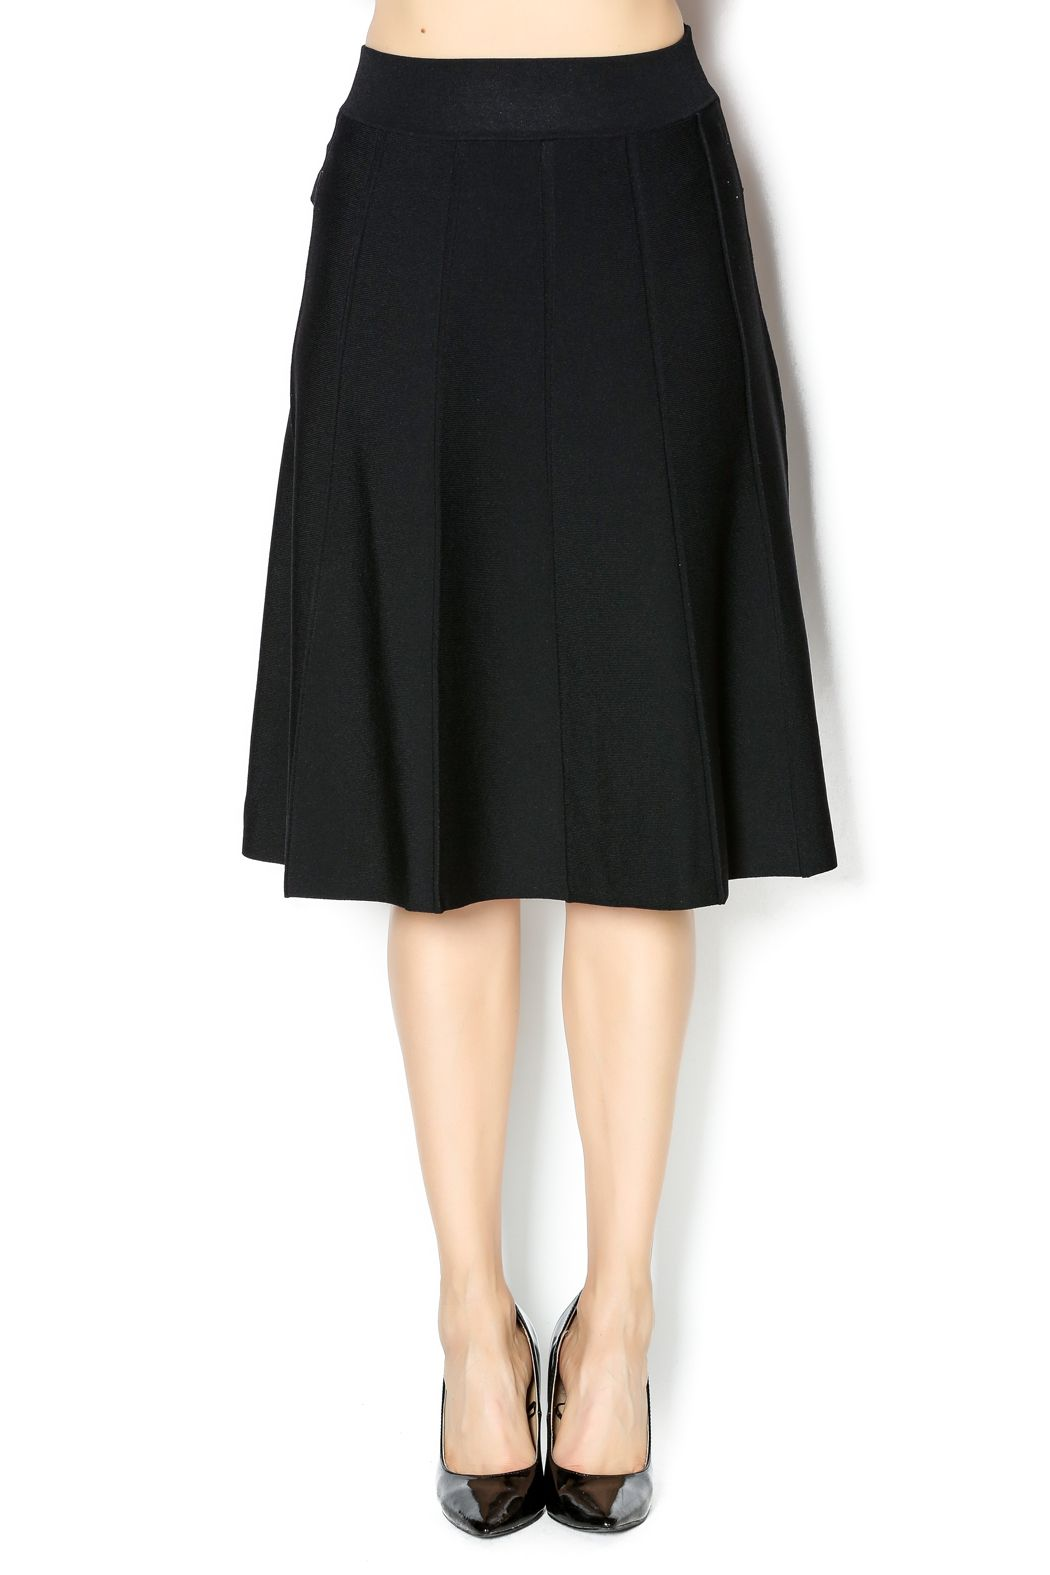 2019 year for lady- How to jersey a wear knit skirt